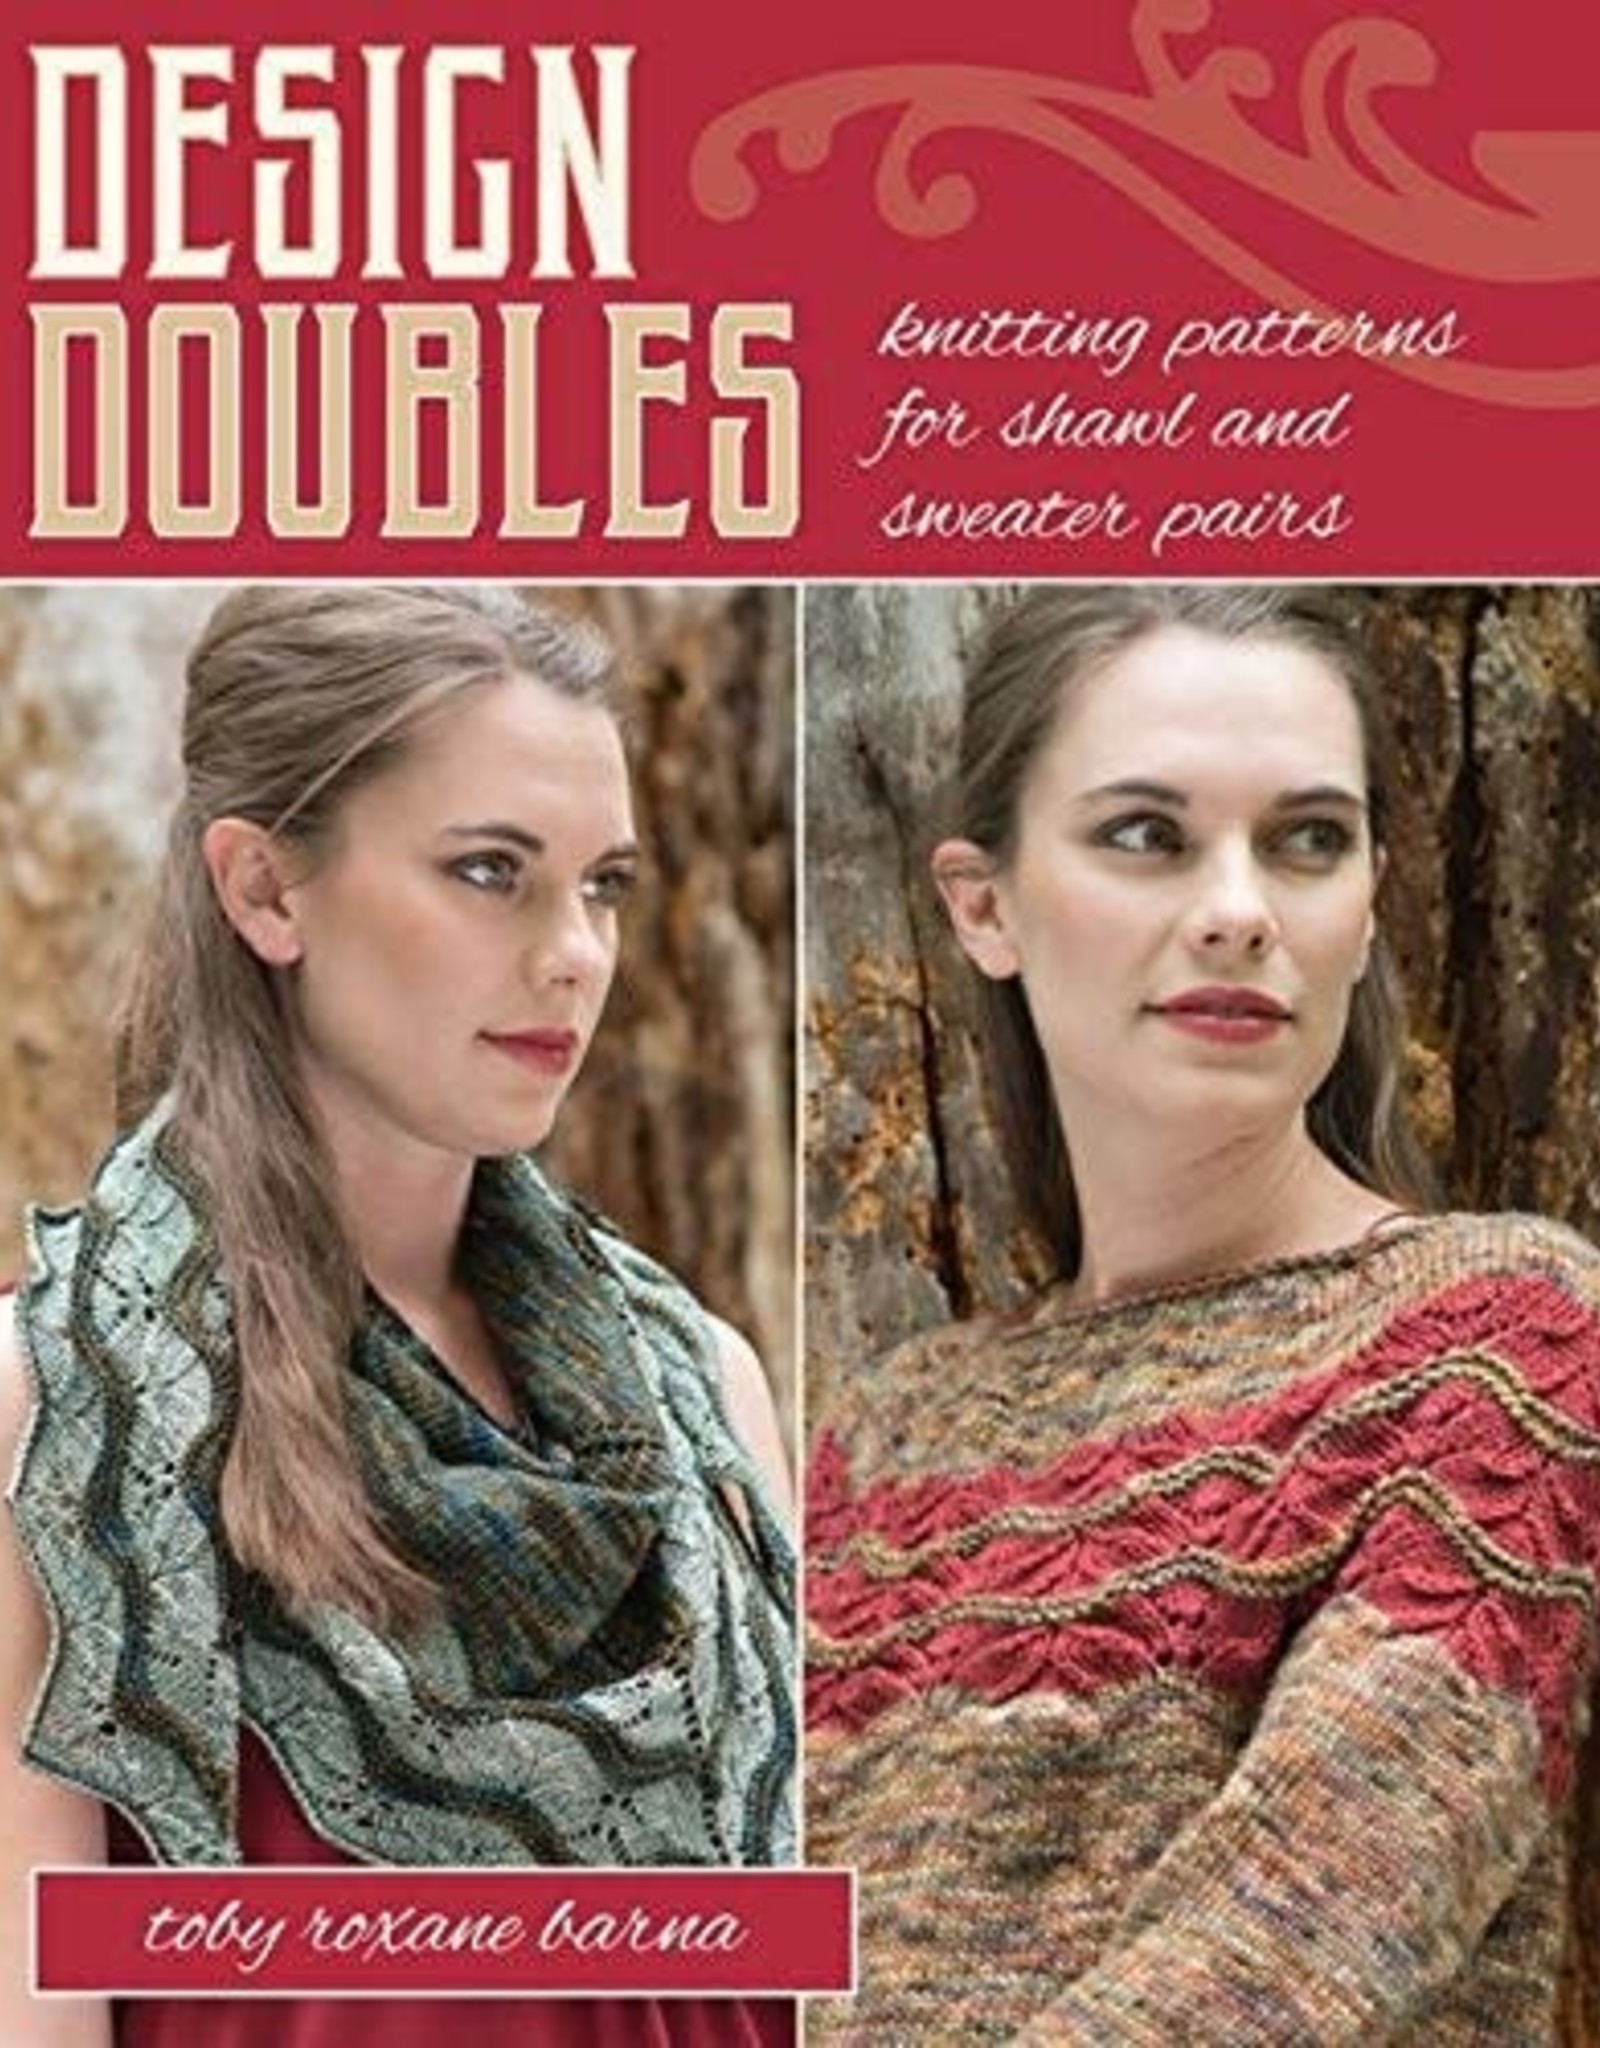 Toby Roxane Design Doubles: Knitting Patterns for Shawl and Sweater Pairs